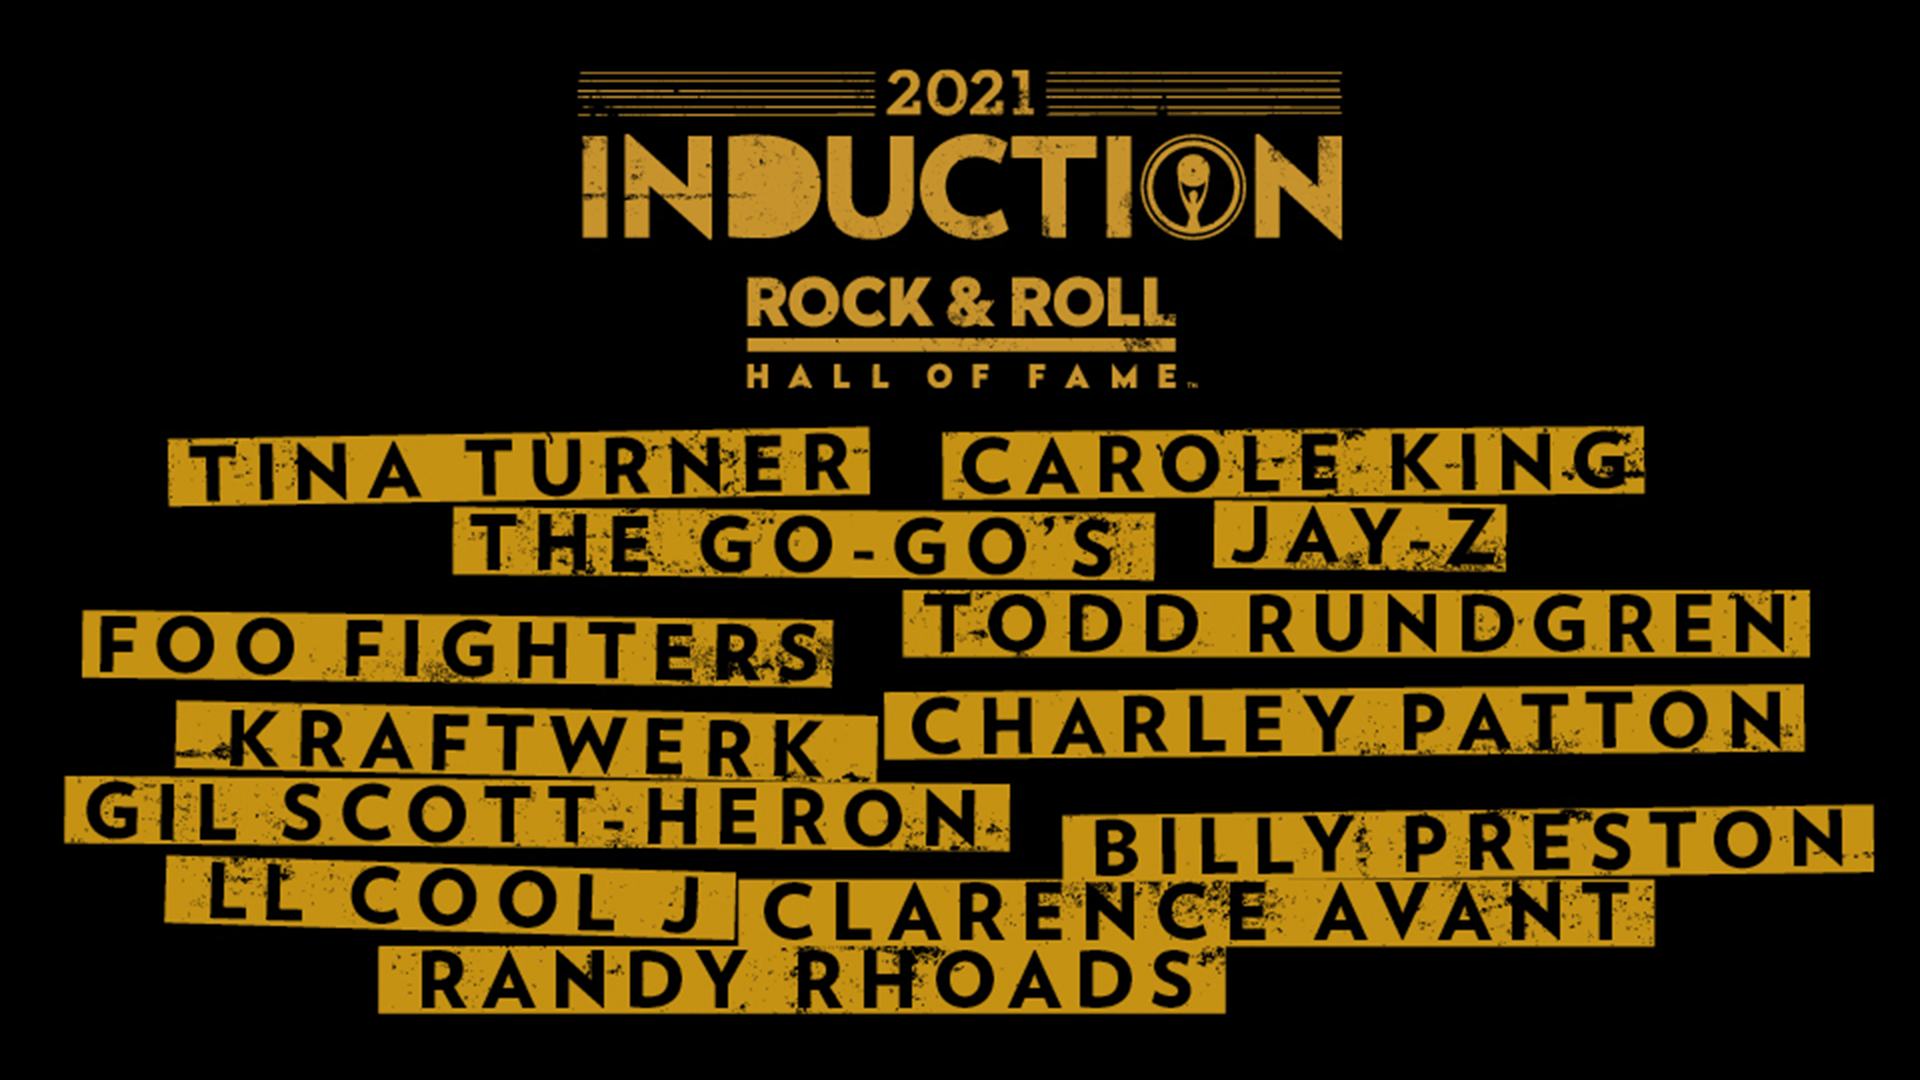 Rock & Roll Hall of Fame announces this year's inductees on SiriusXM VOLUME